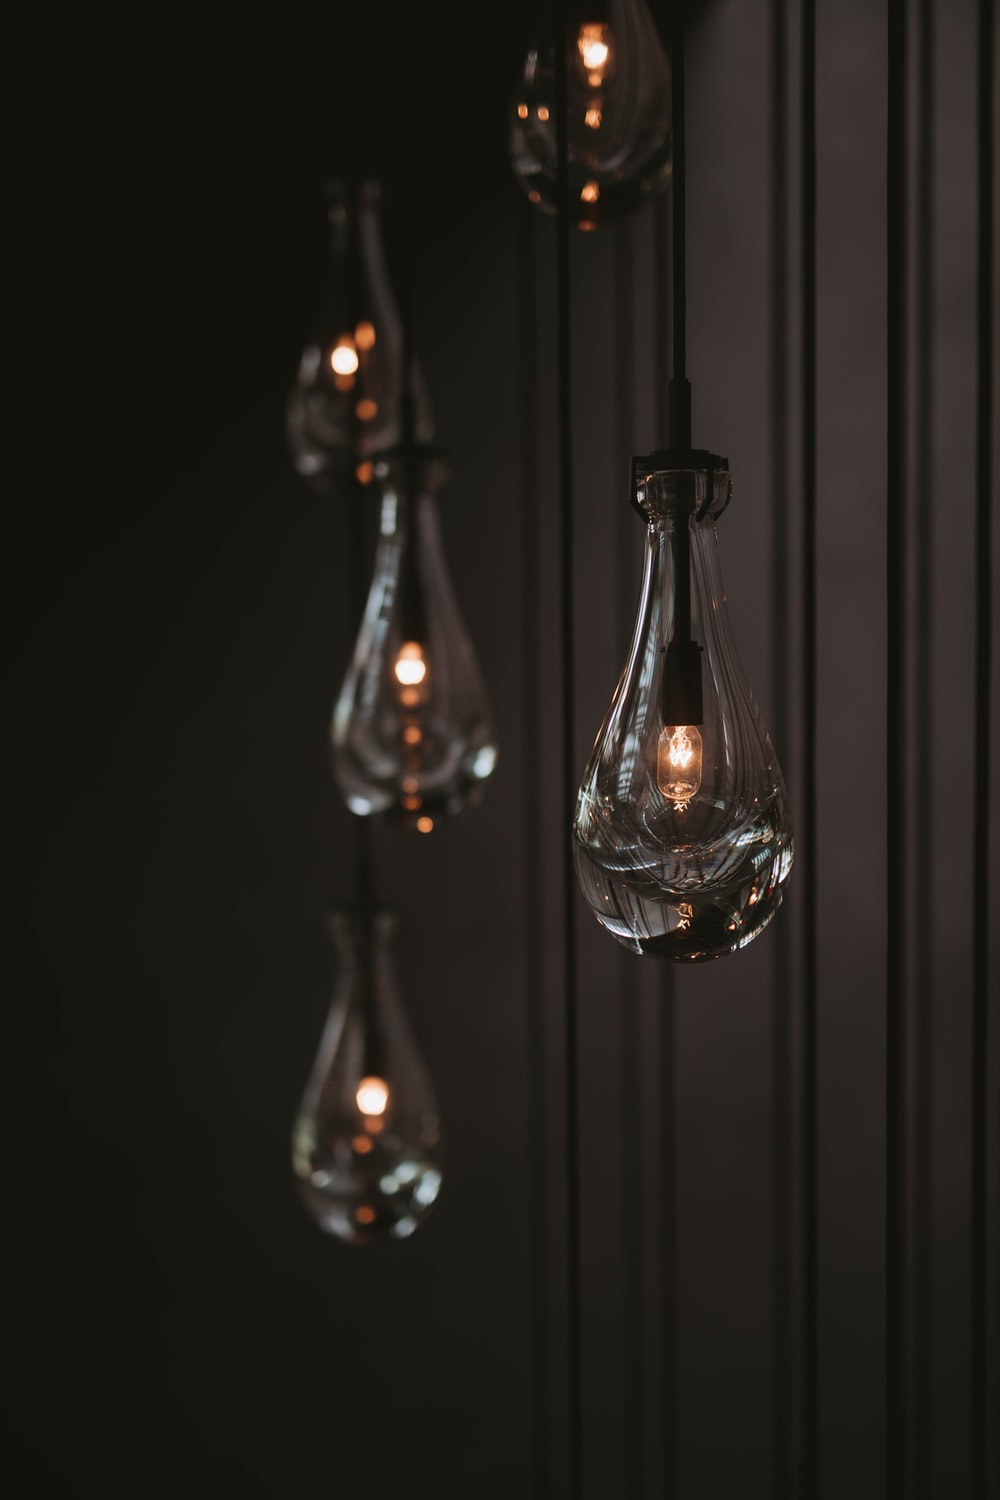 closeup photography of turned-on light bulbs